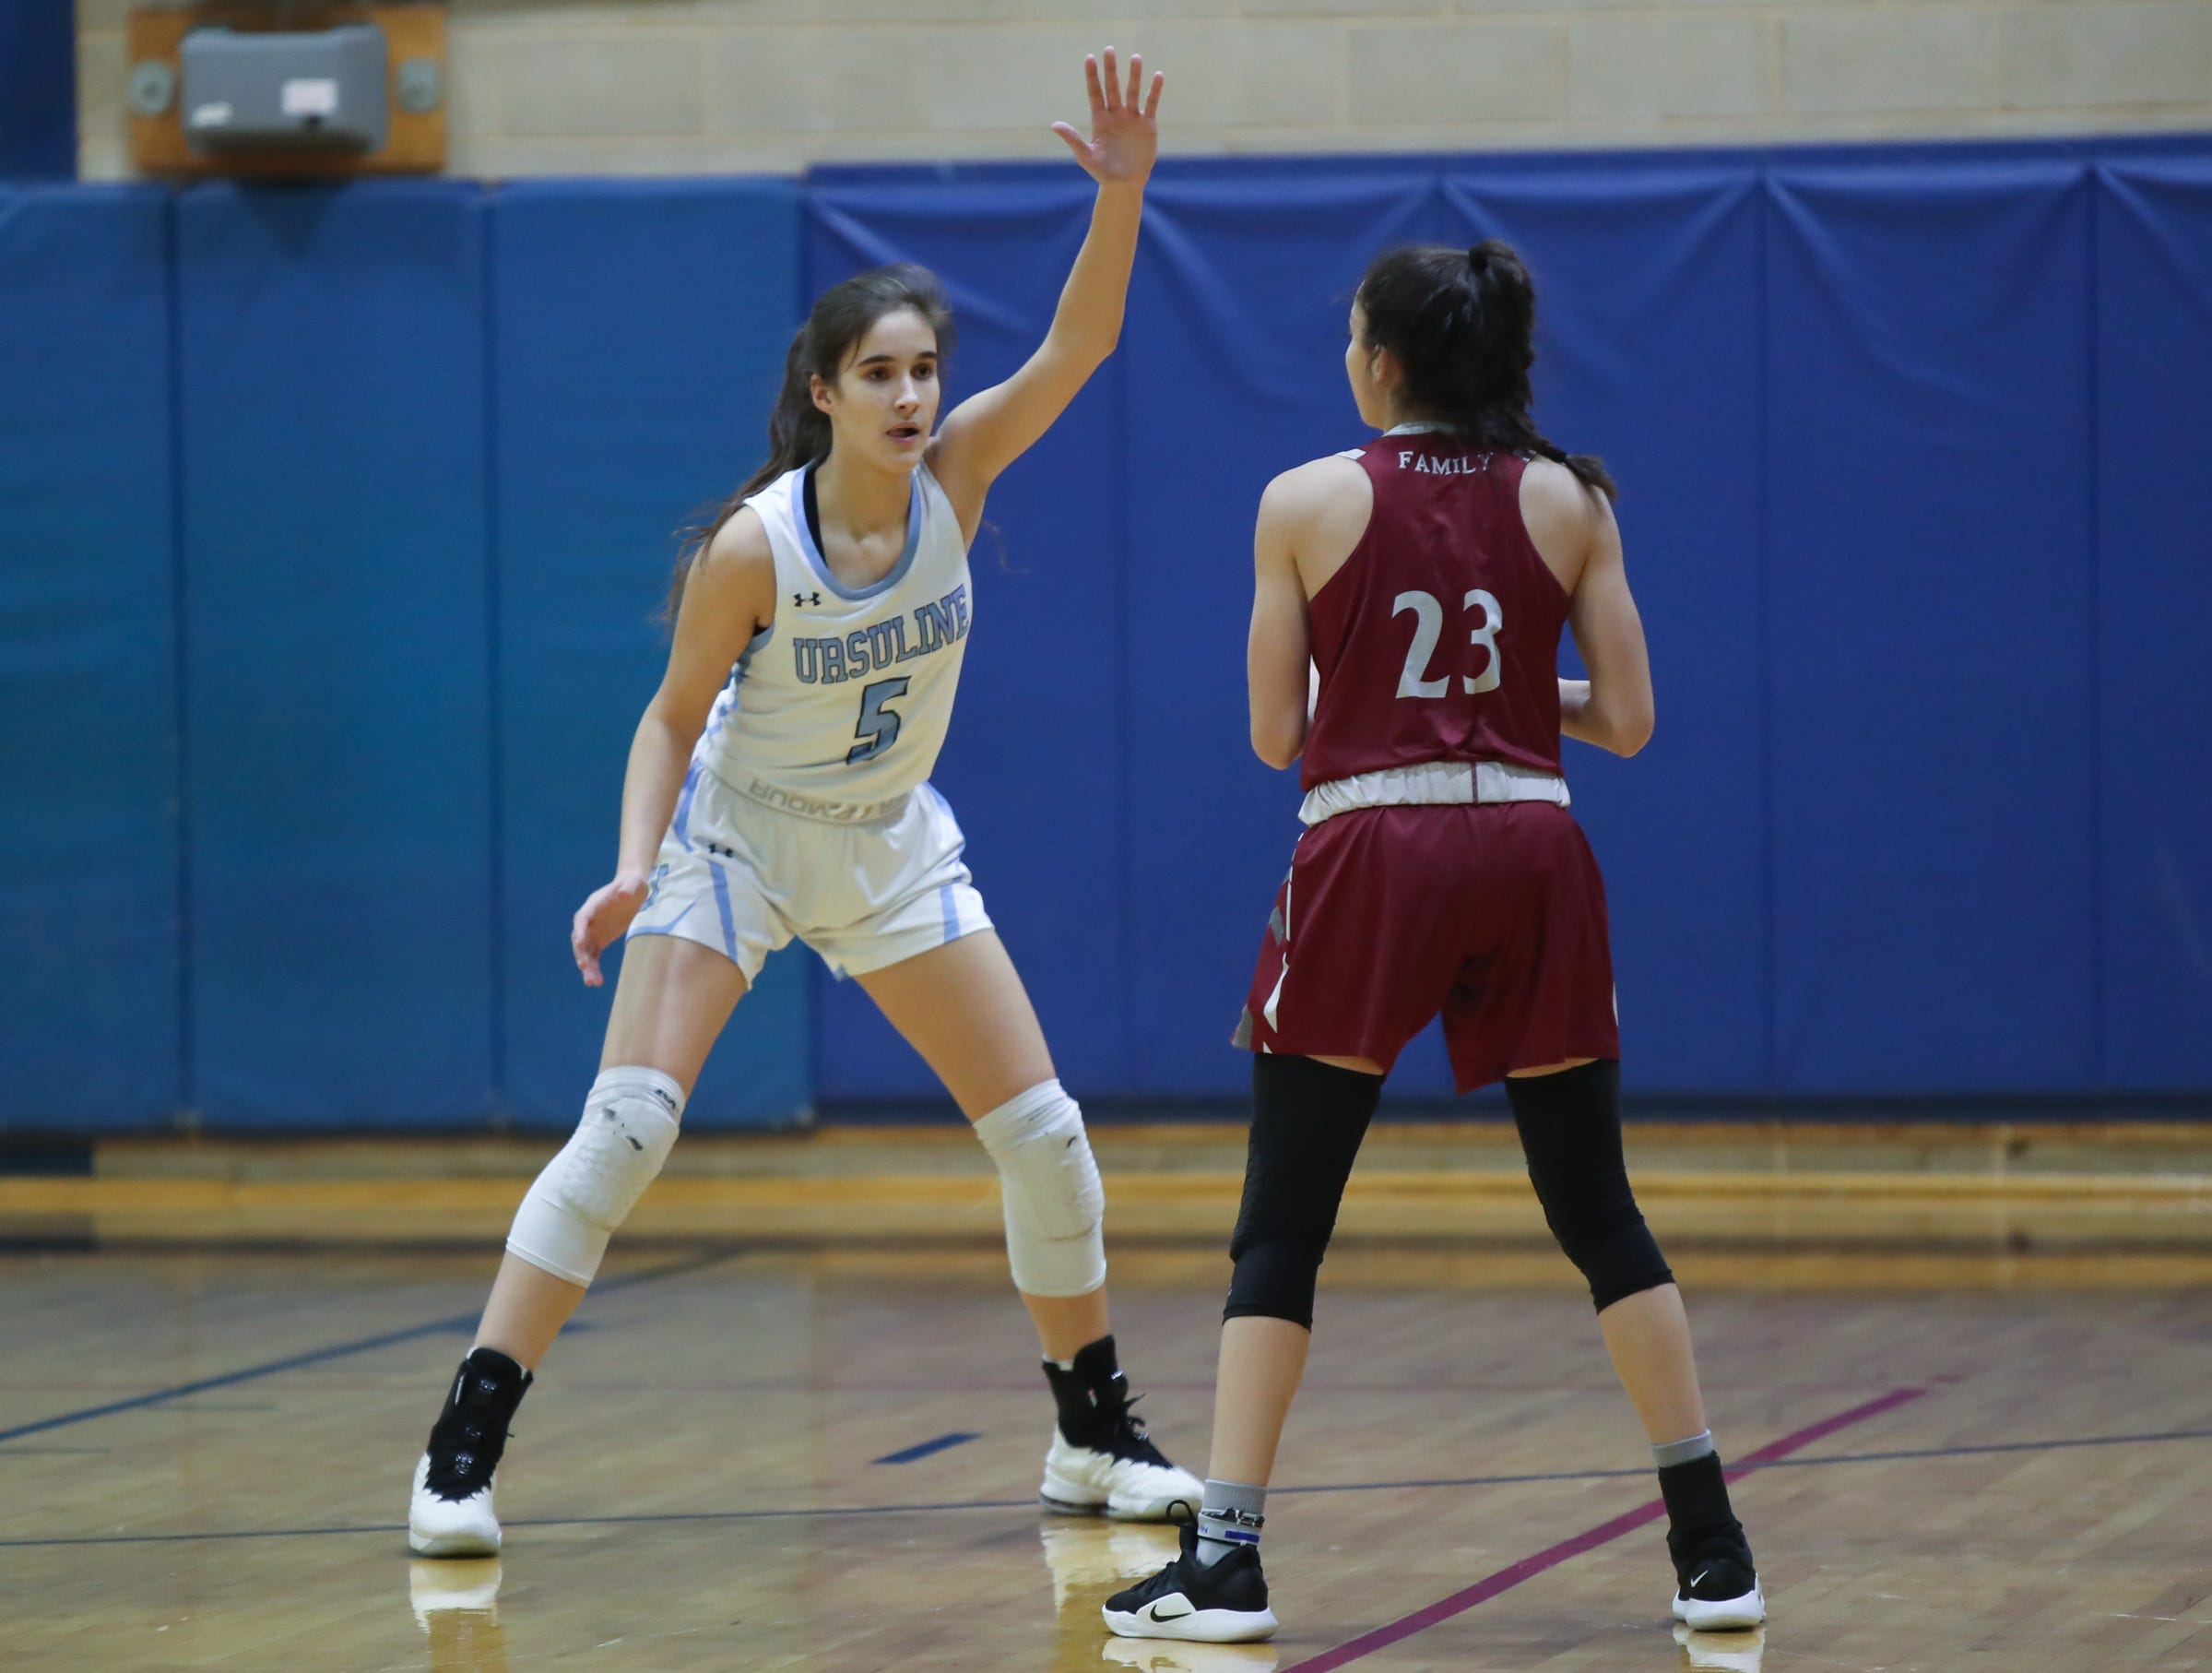 Ursuline's Sonia Citron (5) plays defense against Albertus' Paulina Paris (23) during girls varsity basketball action at The Ursuline School in New Rochelle on Wednesday, January 9, 2019.  Ursuline defeated Albertus 68-48.